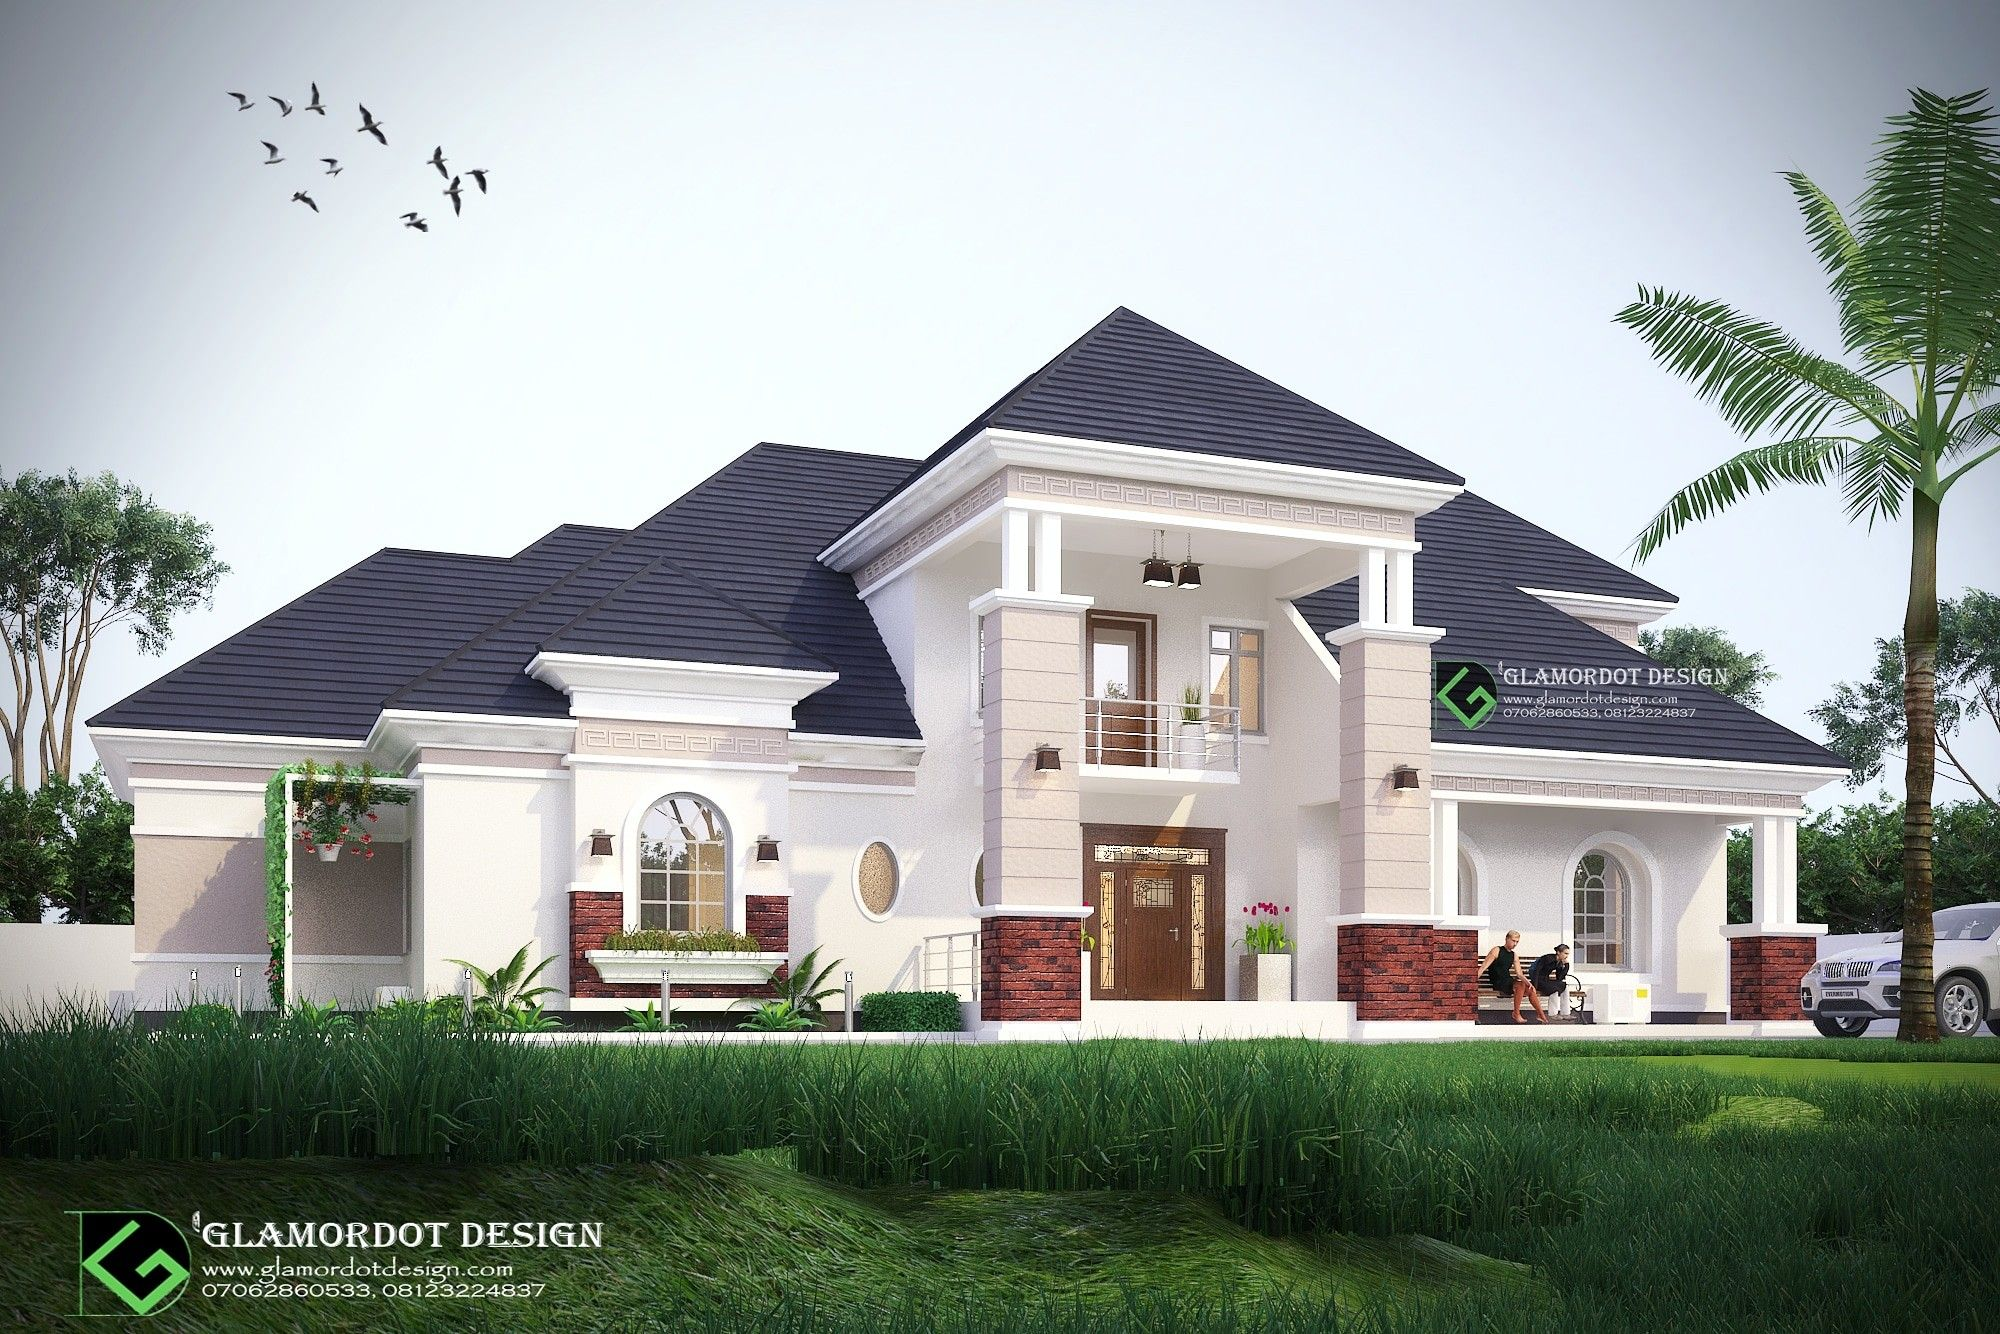 Modified Architectural Design Of A Proposed 5 Bedroom Bungalow With Pent House Abuja Nigeria Building Bungalow Design Bungalow House Design Modern Bungalow